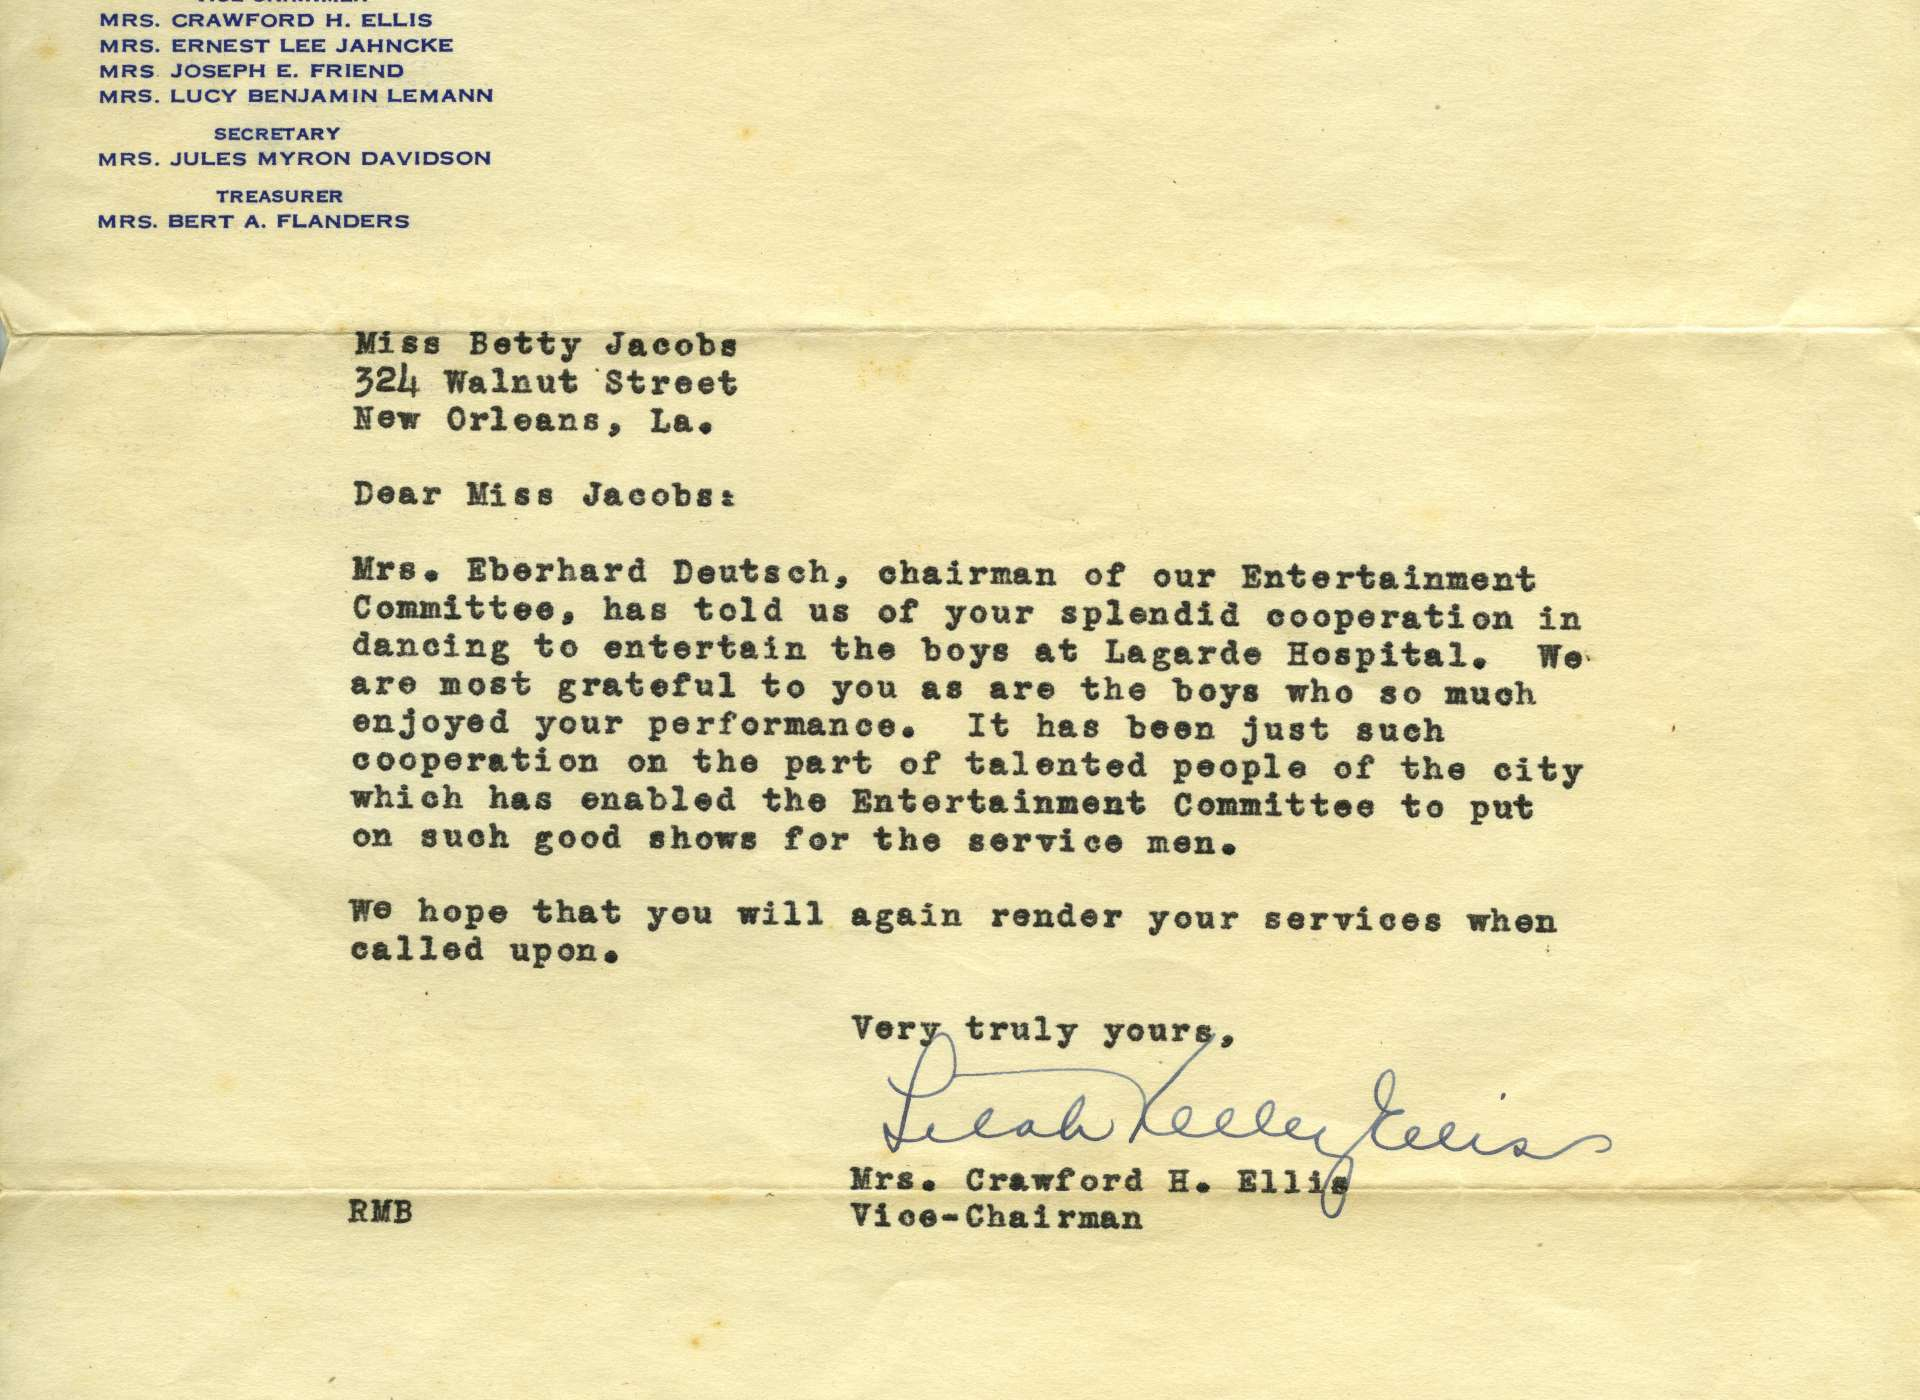 betty jacobs letter